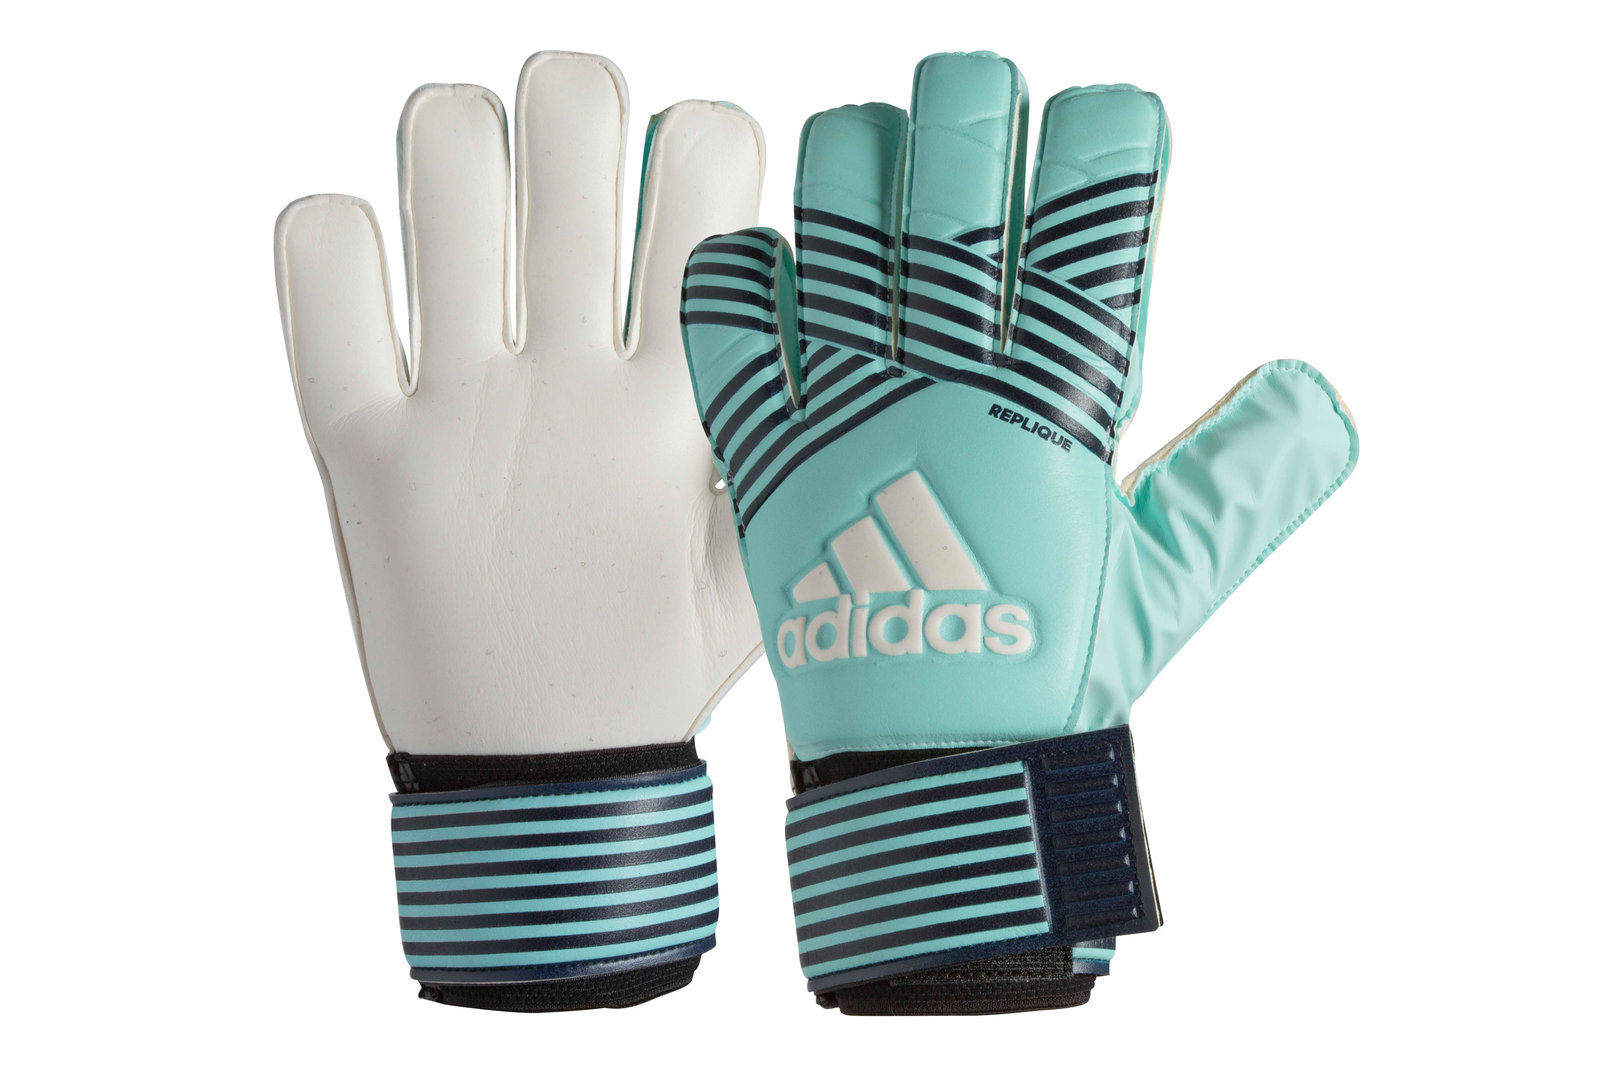 Image of Ace Replique Goalkeeper Gloves